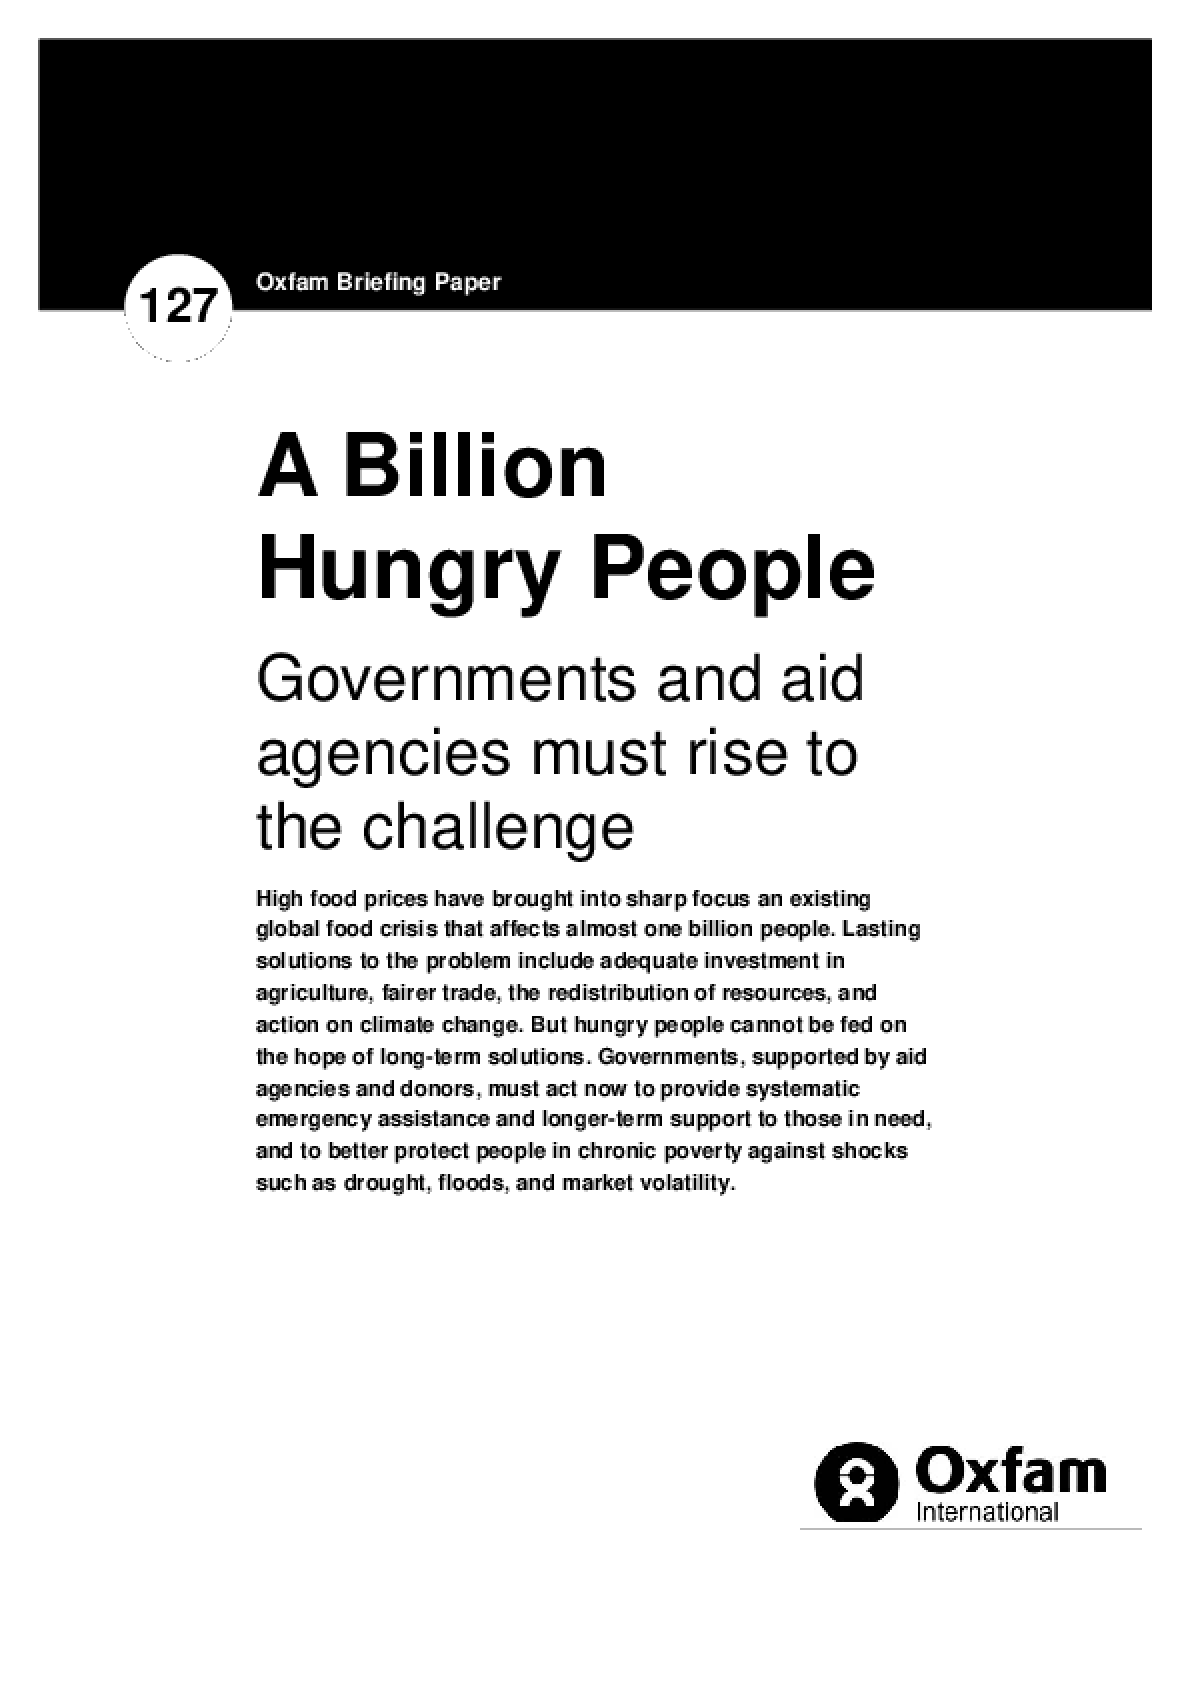 A Billion Hungry People: Governments and aid agencies must rise to the challenge